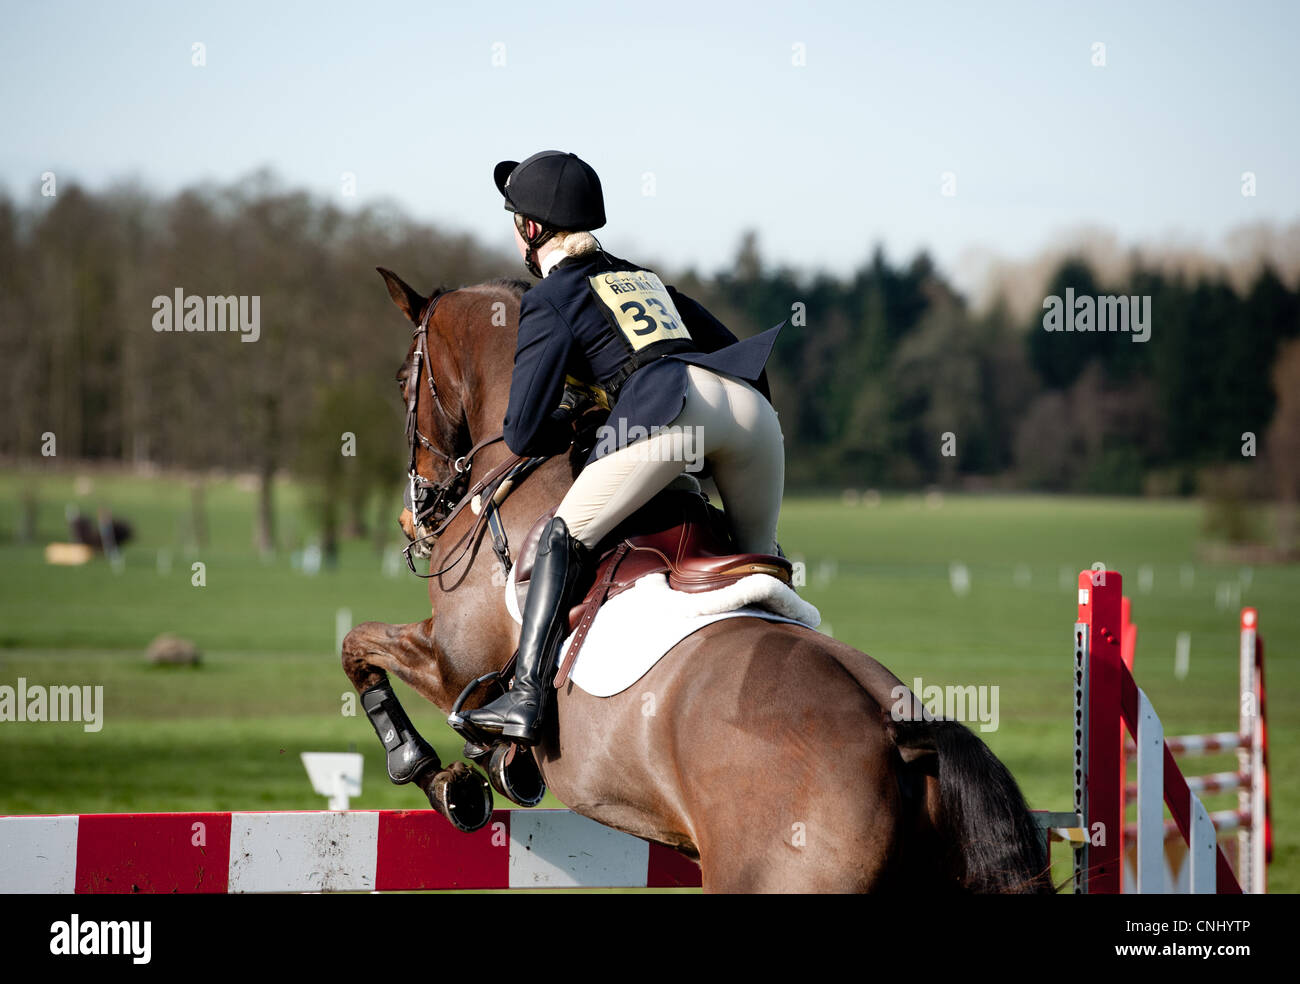 Horse Show Jumping Immagini Stock